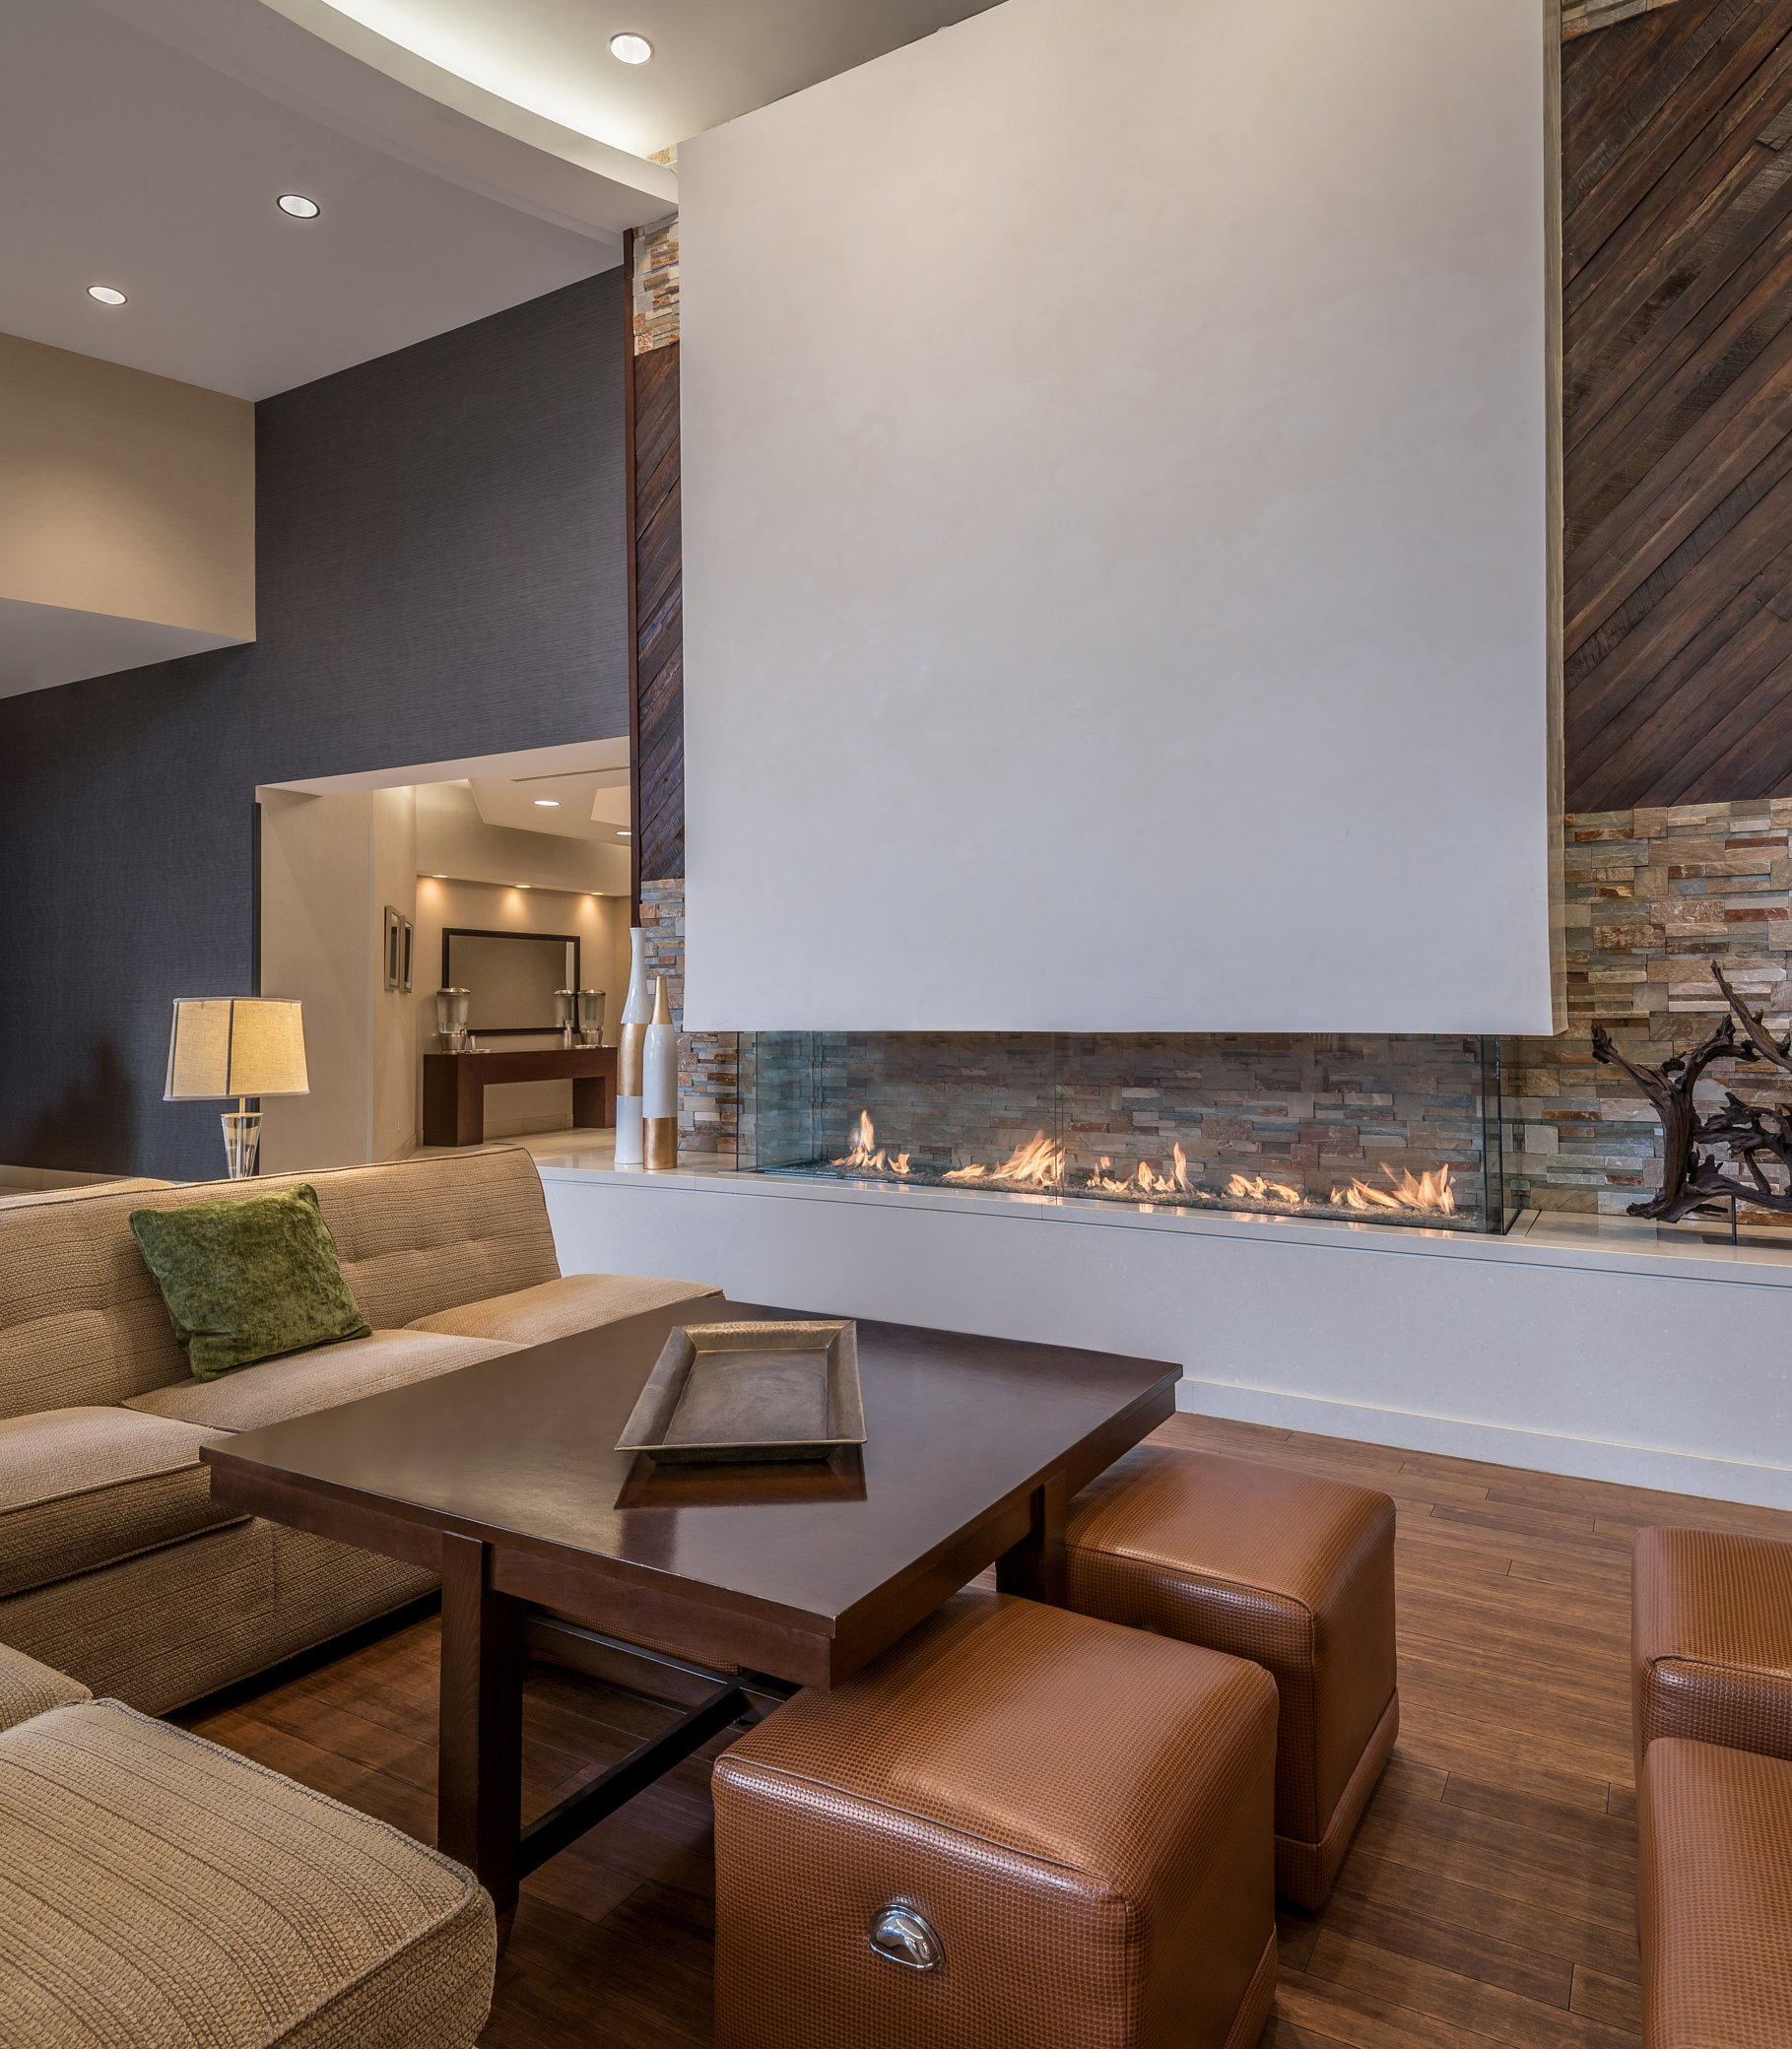 Provo Marriott Hotel & Conference Center image 15